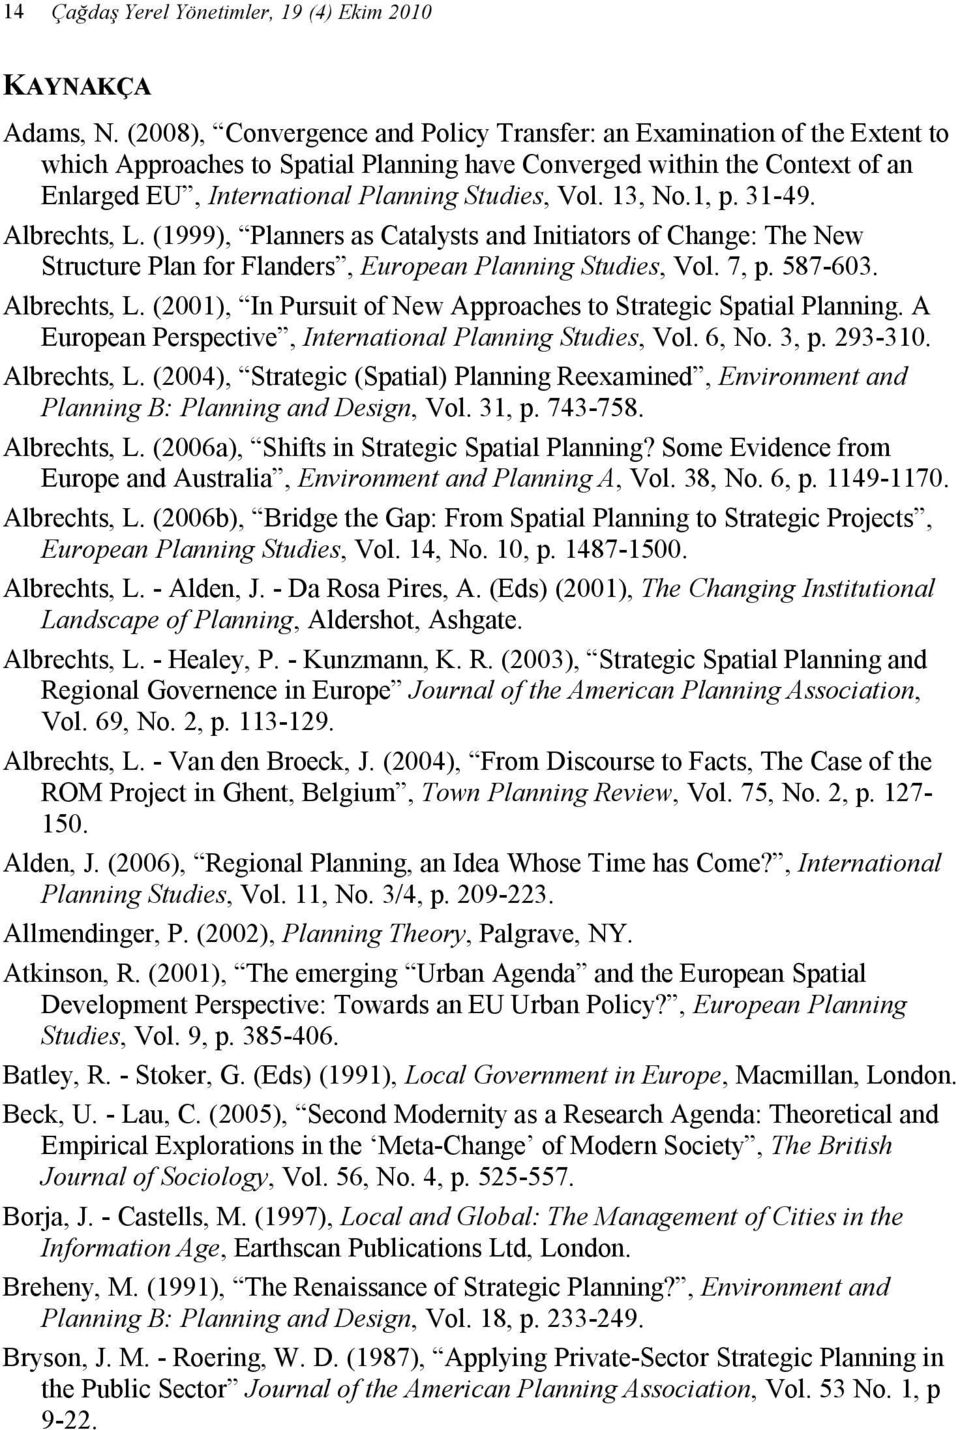 13, No.1, p. 31-49. Albrechts, L. (1999), Planners as Catalysts and Initiators of Change: The New Structure Plan for Flanders, European Planning Studies, Vol. 7, p. 587-603. Albrechts, L. (2001), In Pursuit of New Approaches to Strategic Spatial Planning.